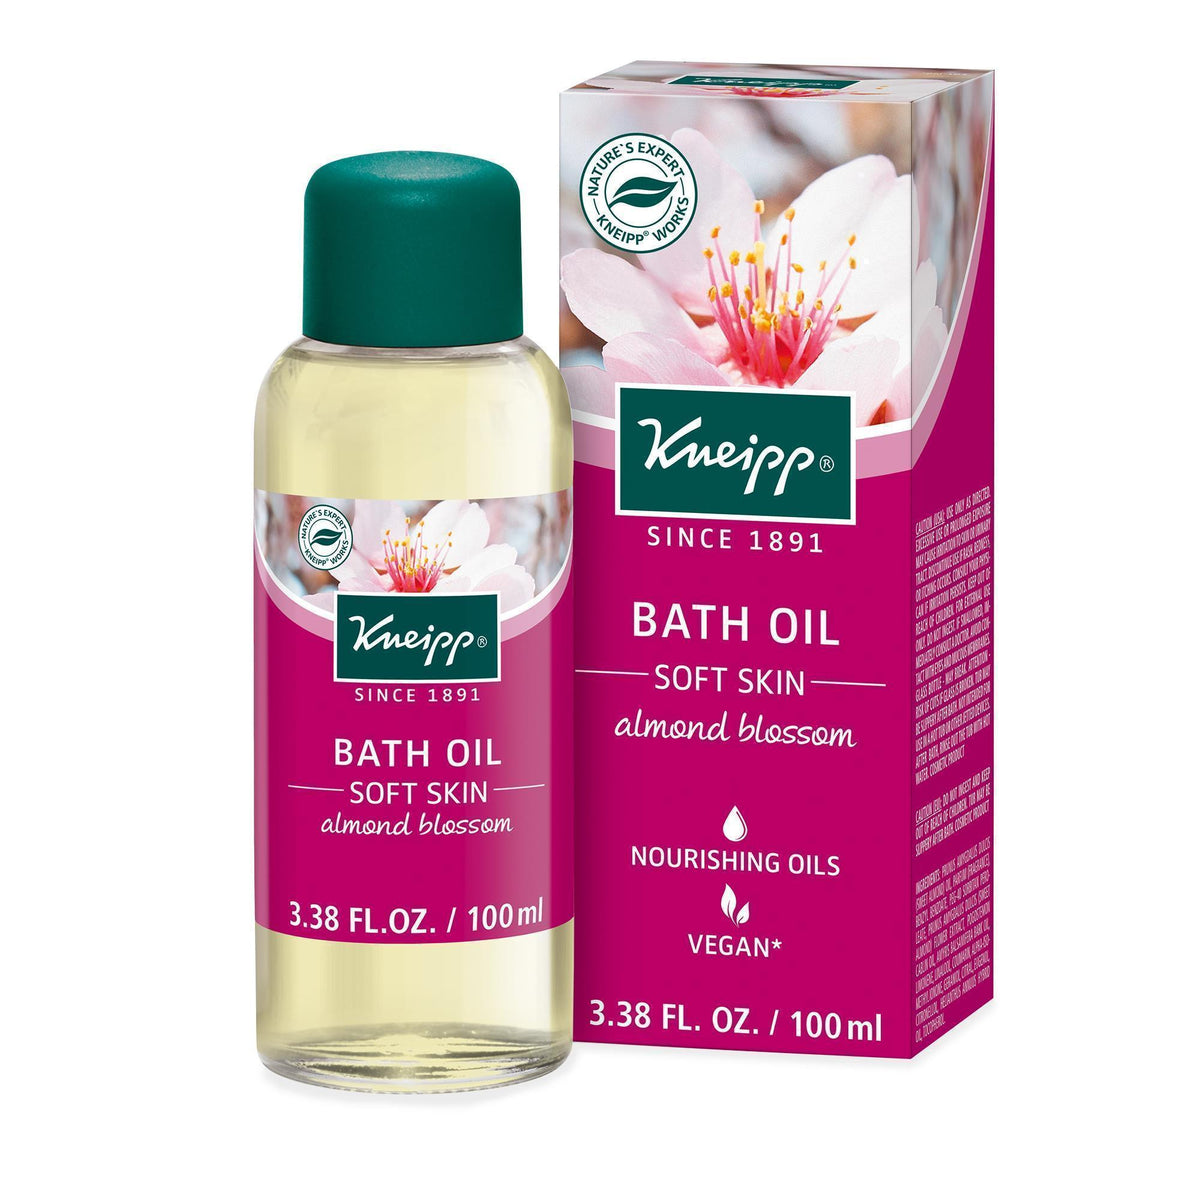 Kneipp Soft Skin Bath Oil